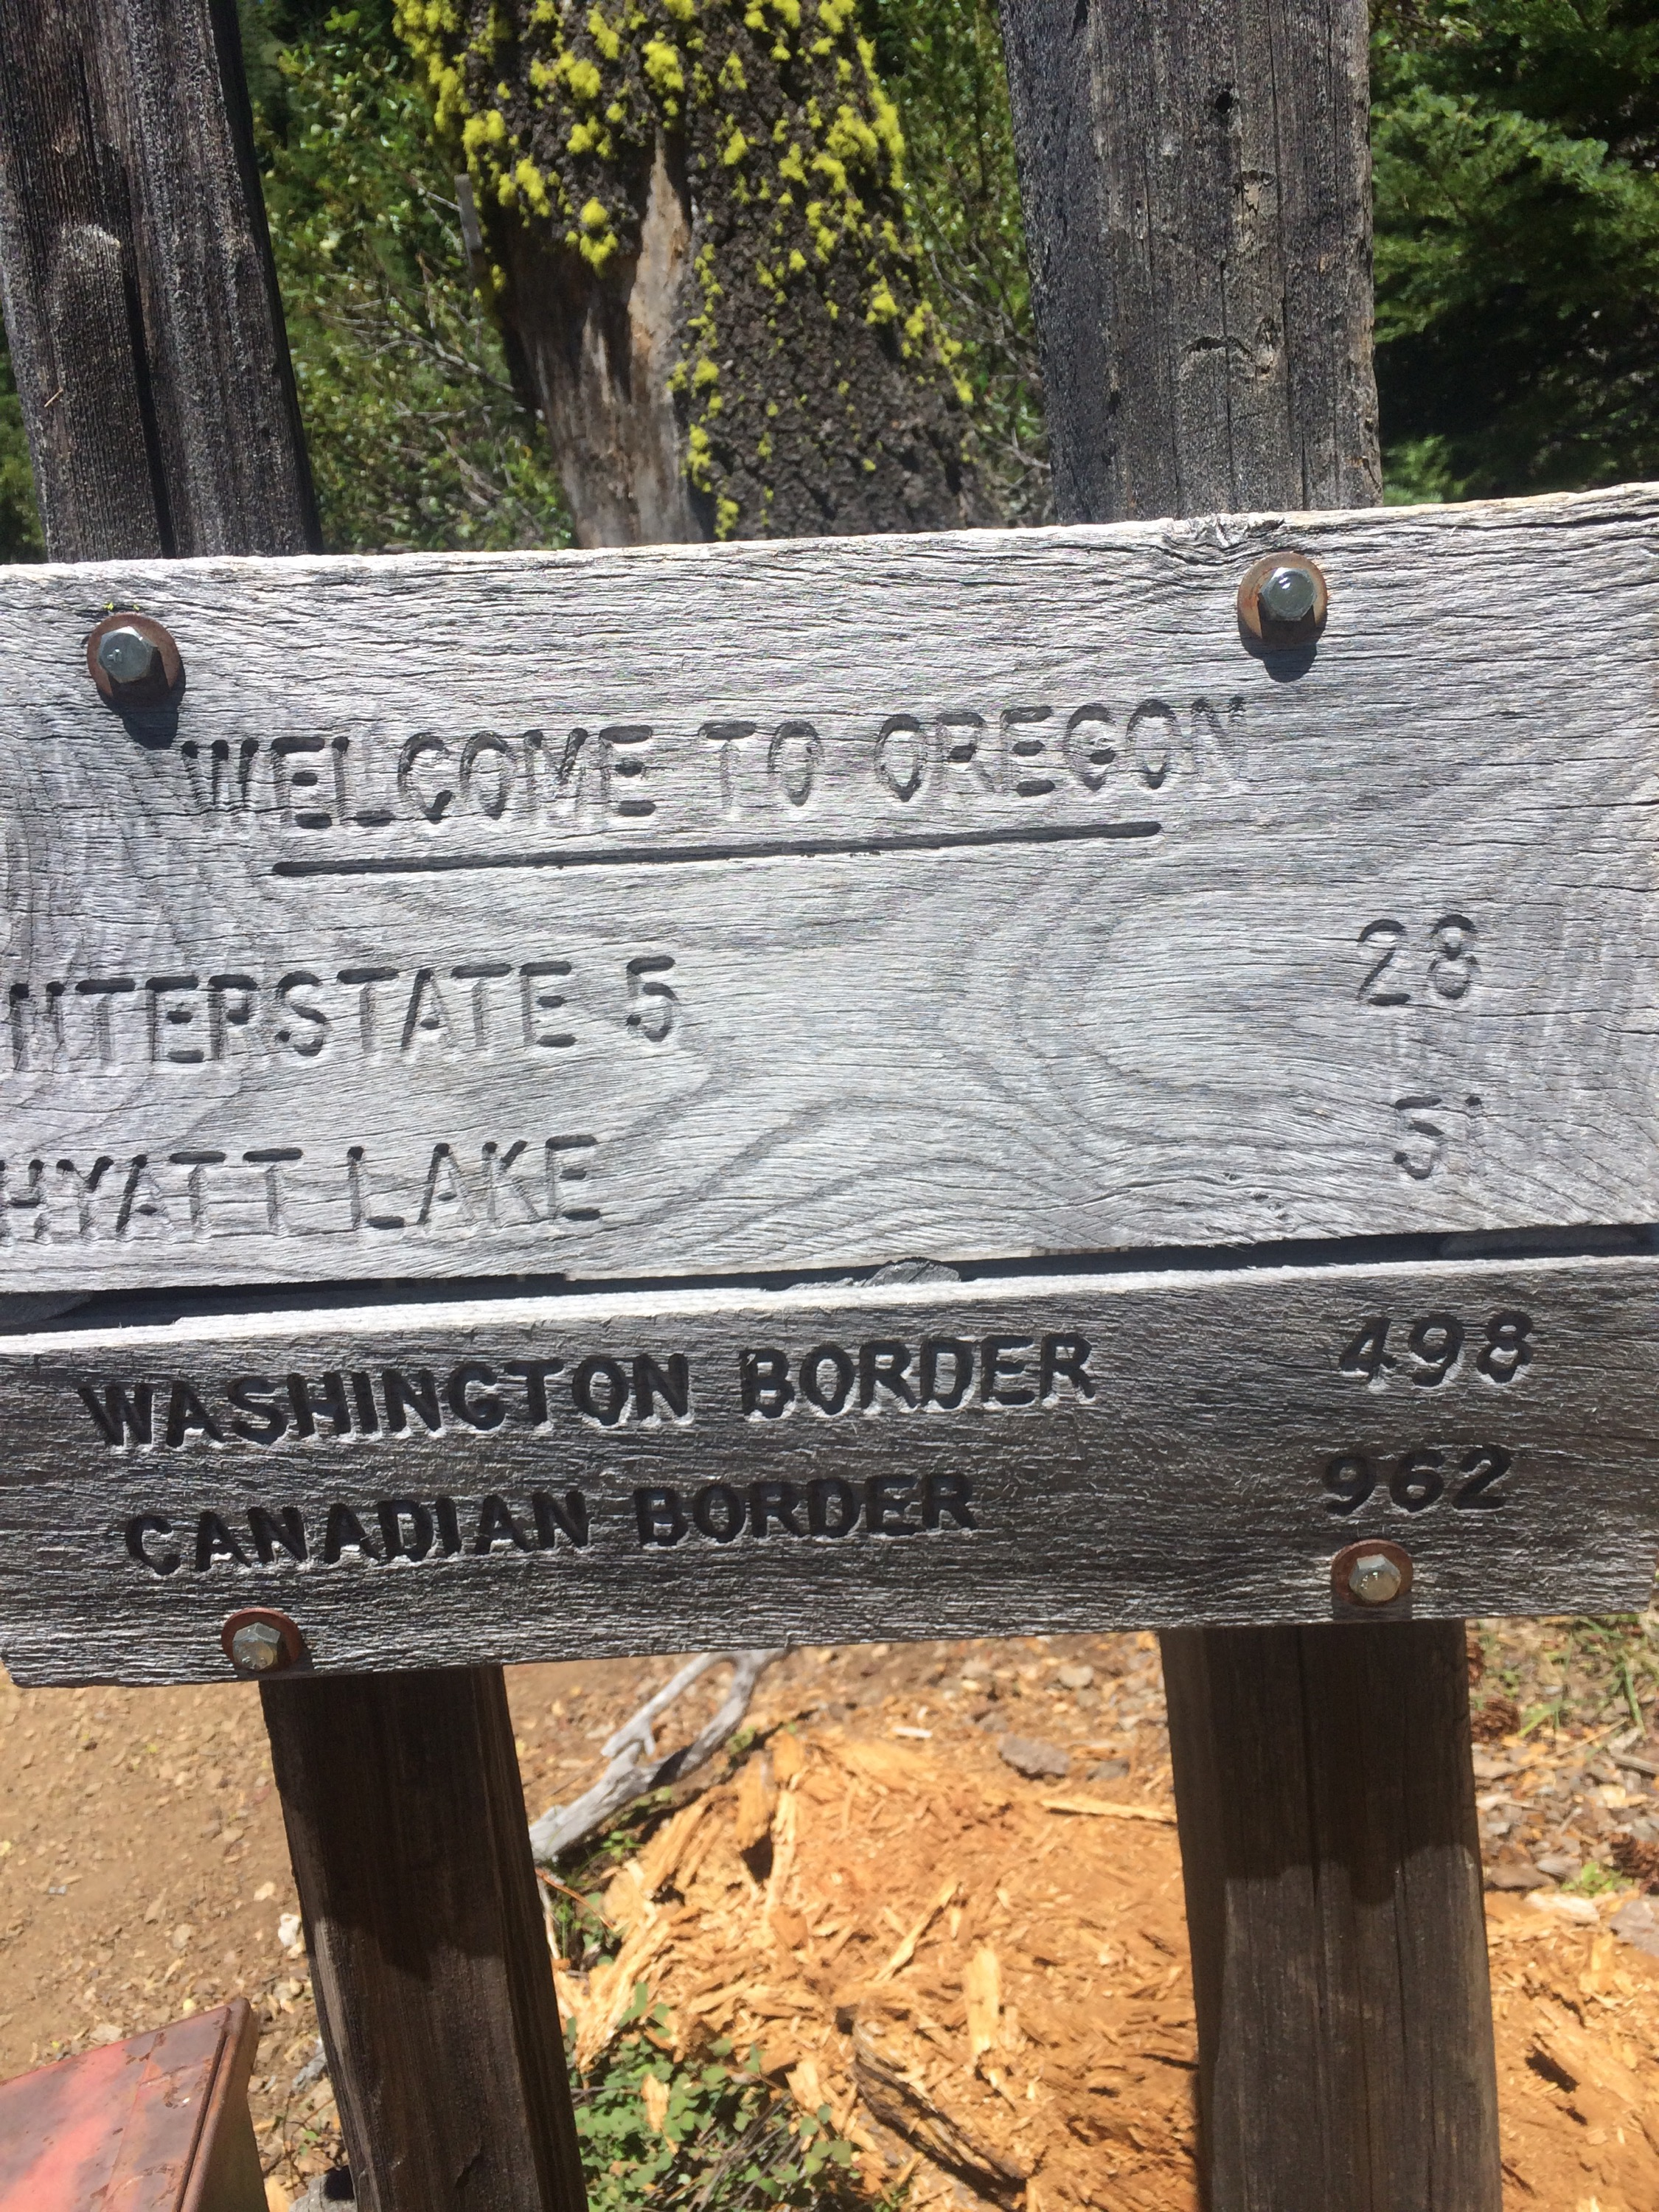 Oregon / California Border!